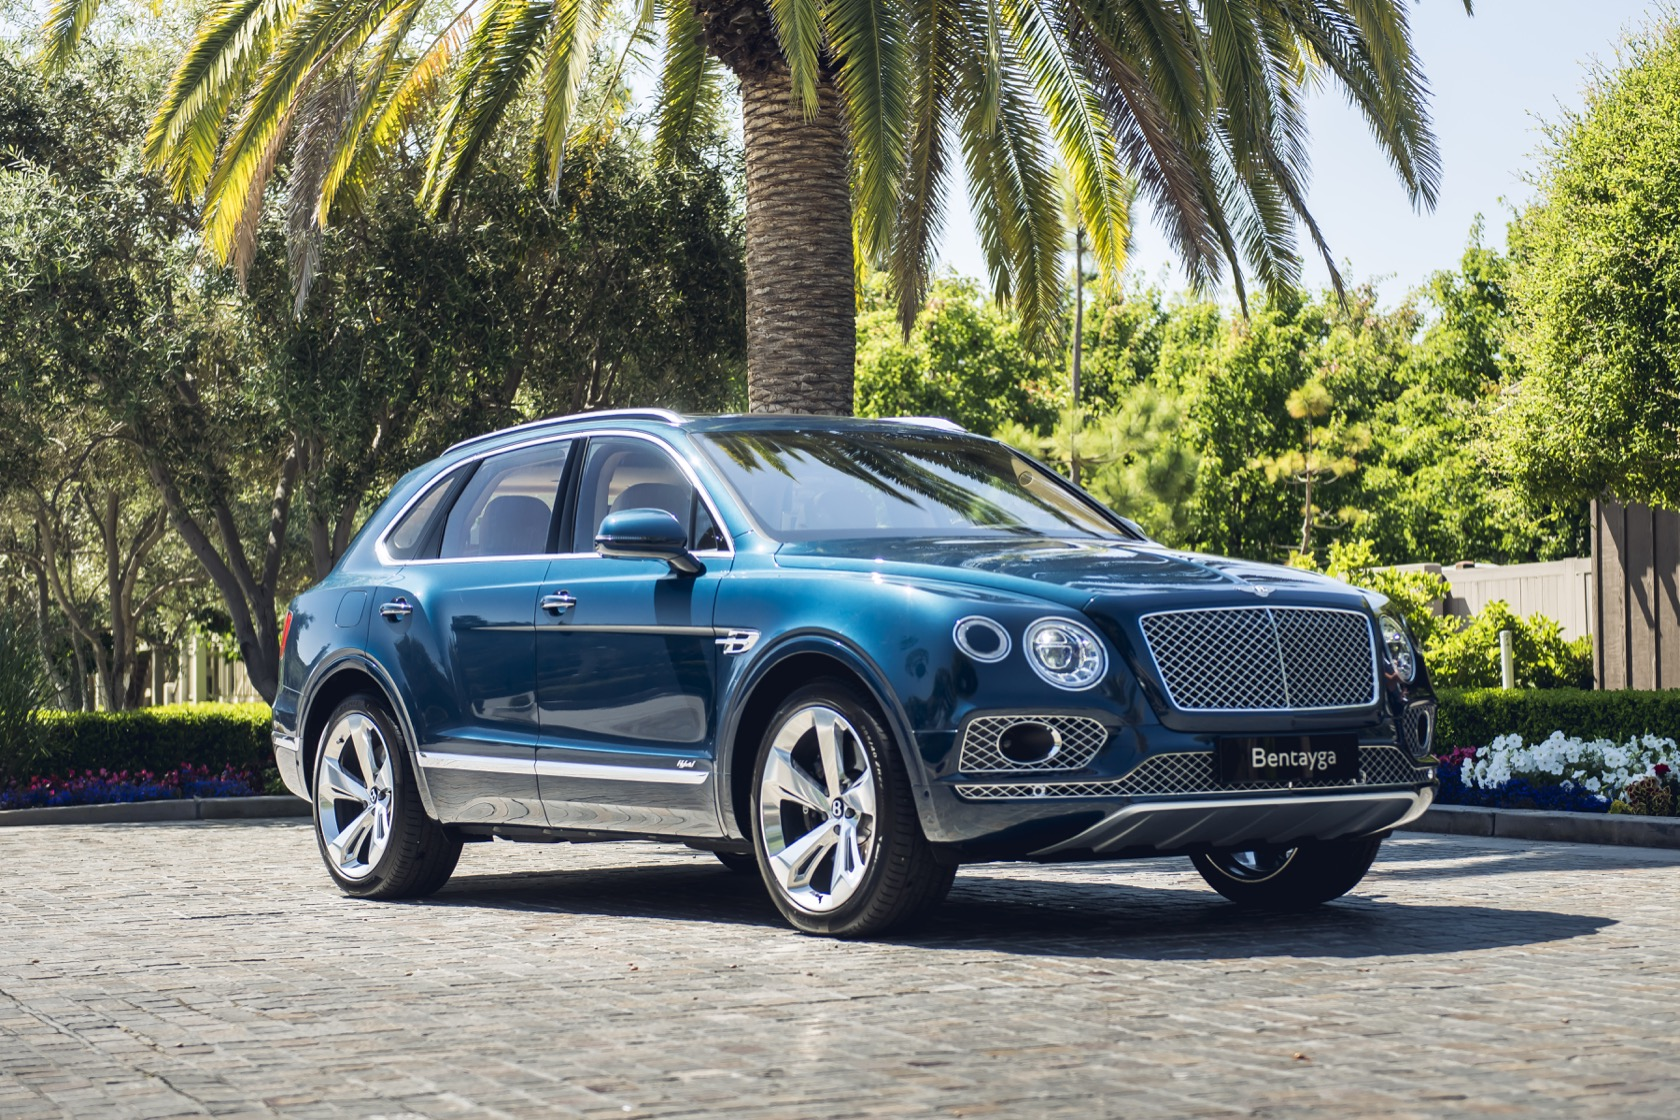 Affordable Electric Cars >> 2020 Bentley Bentayga Hybrid First Drive: Charged with ...